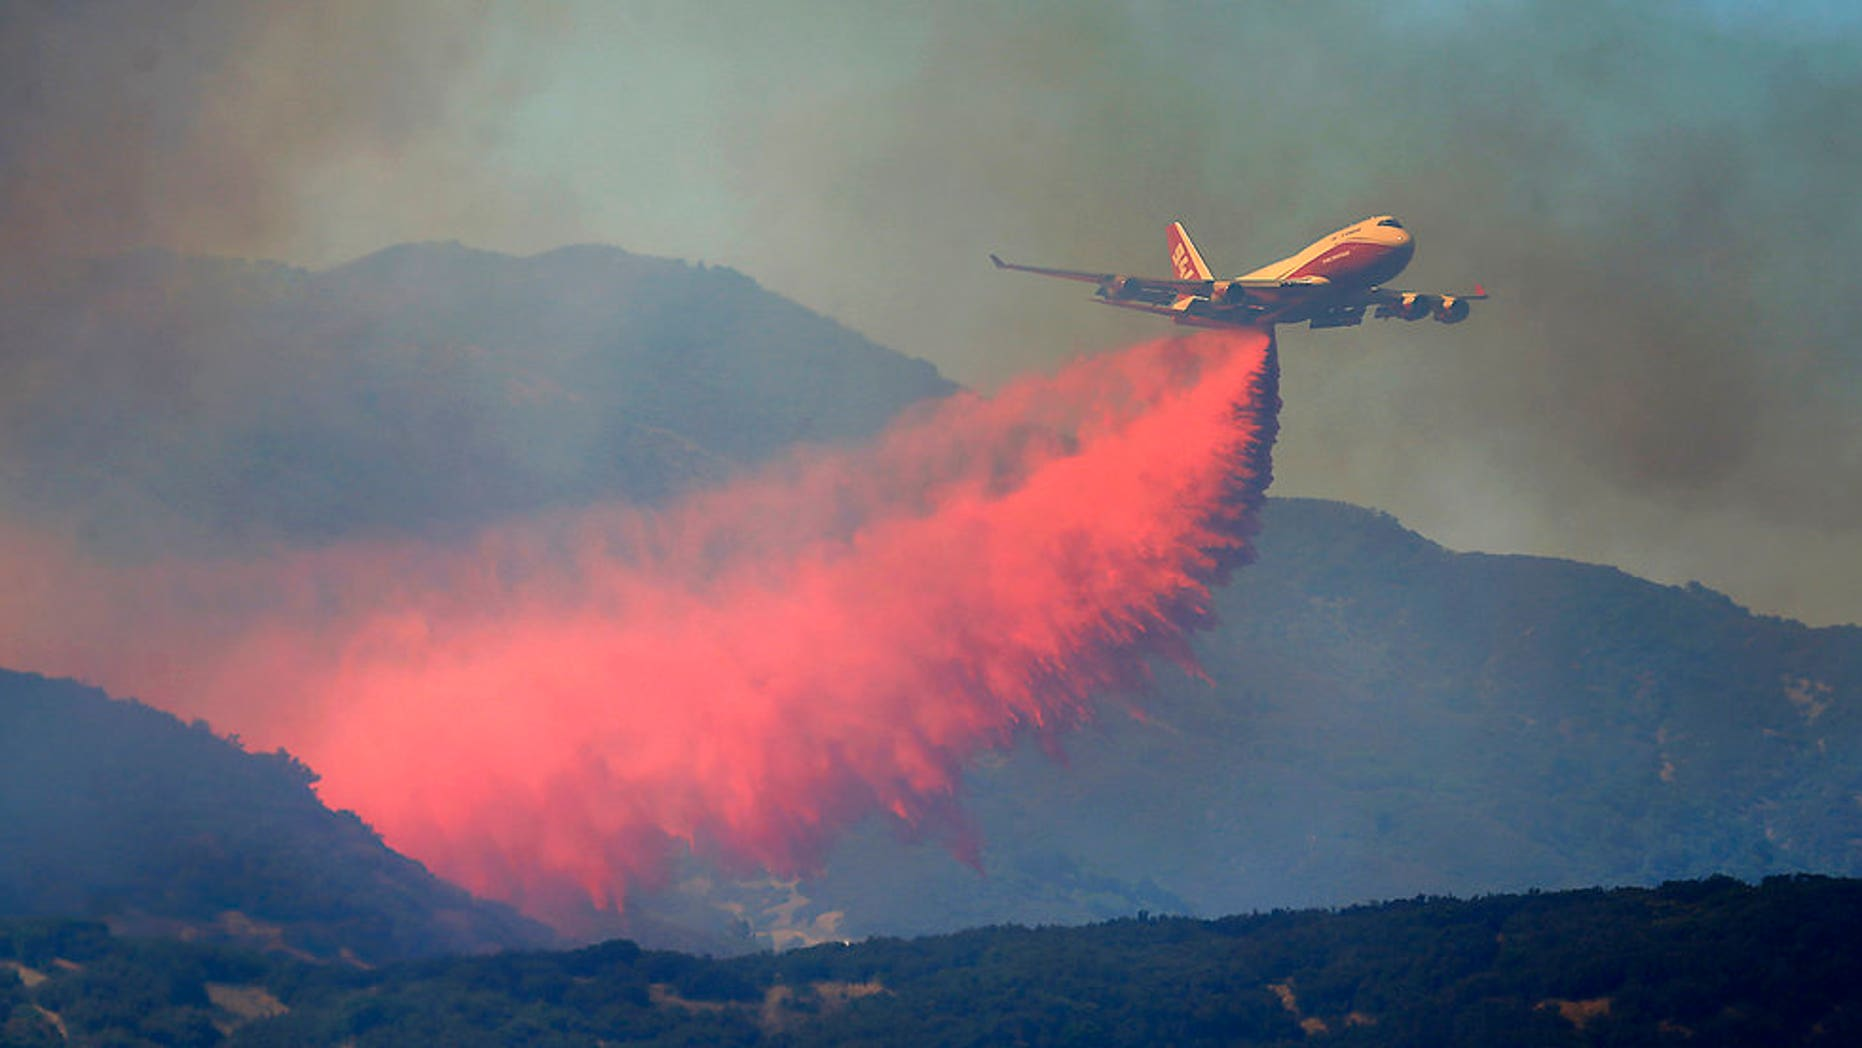 A 747 Global air tanker makes a drop on a wildfire in Scotts Valley, Friday, Aug. 3, 2018, near Lakeport, Calif. (Kent Porter /The Press Democrat via AP)